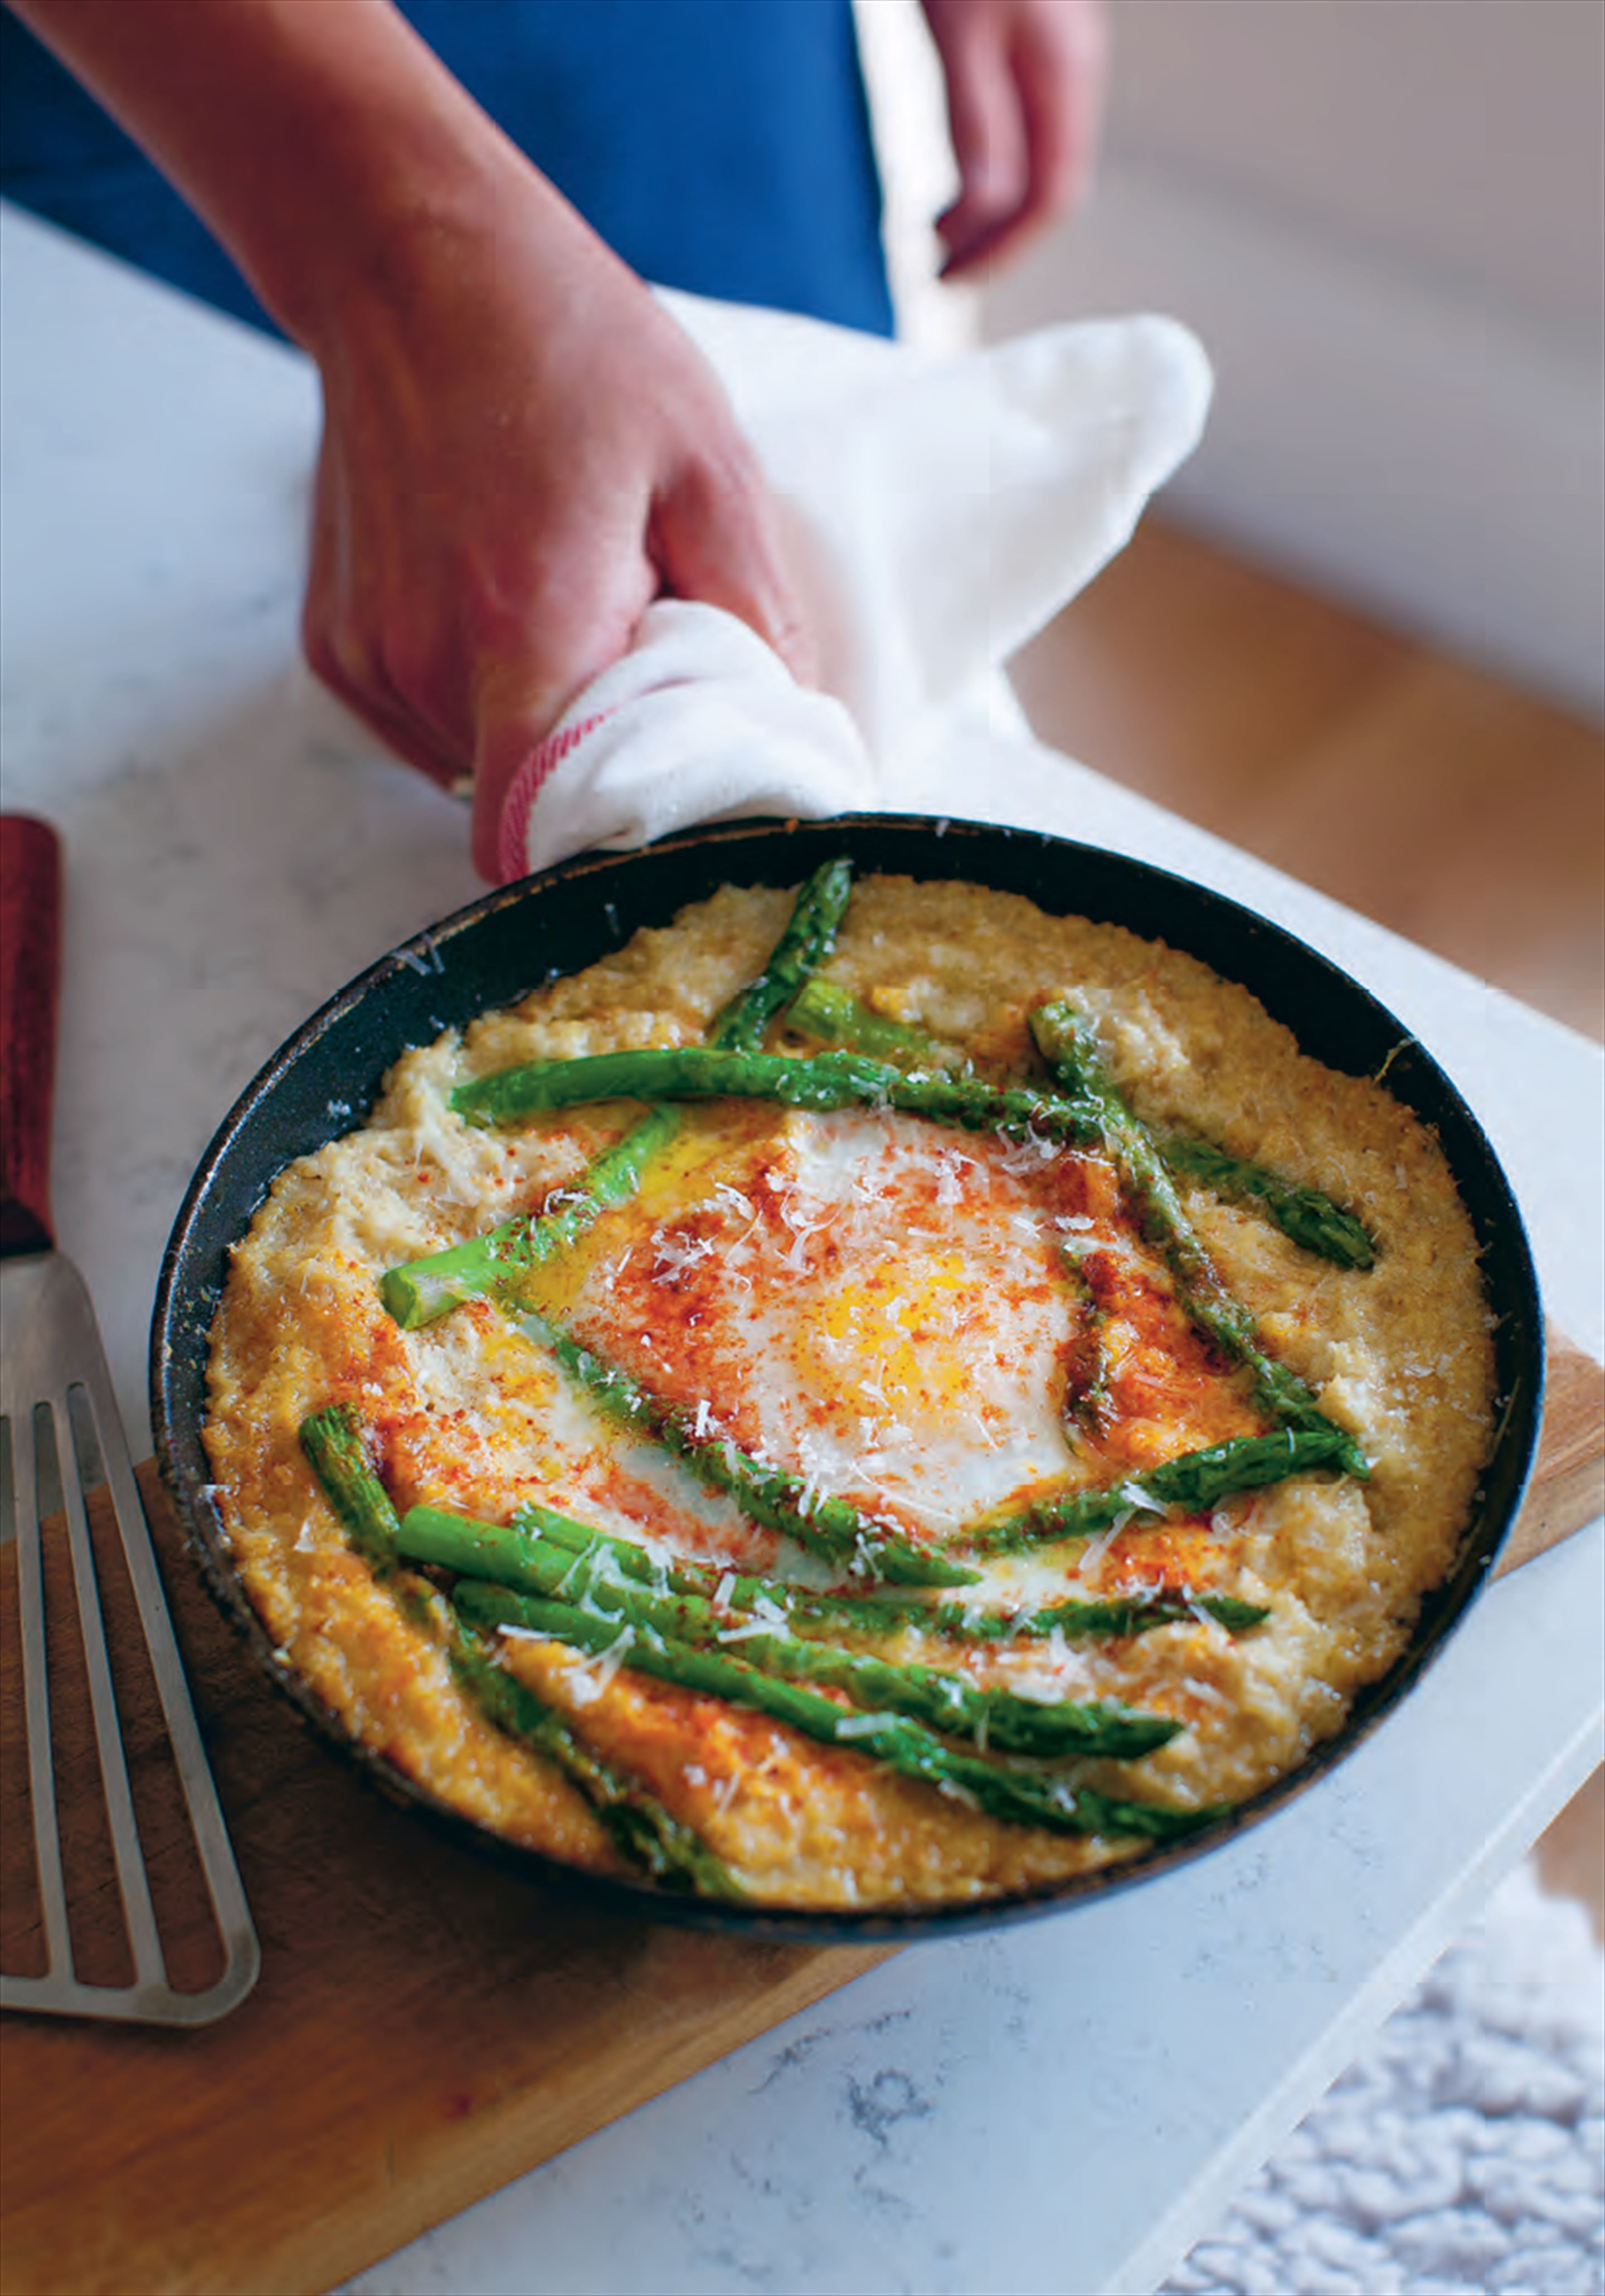 Baked oatmeal with eggs, asparagus and pimentón